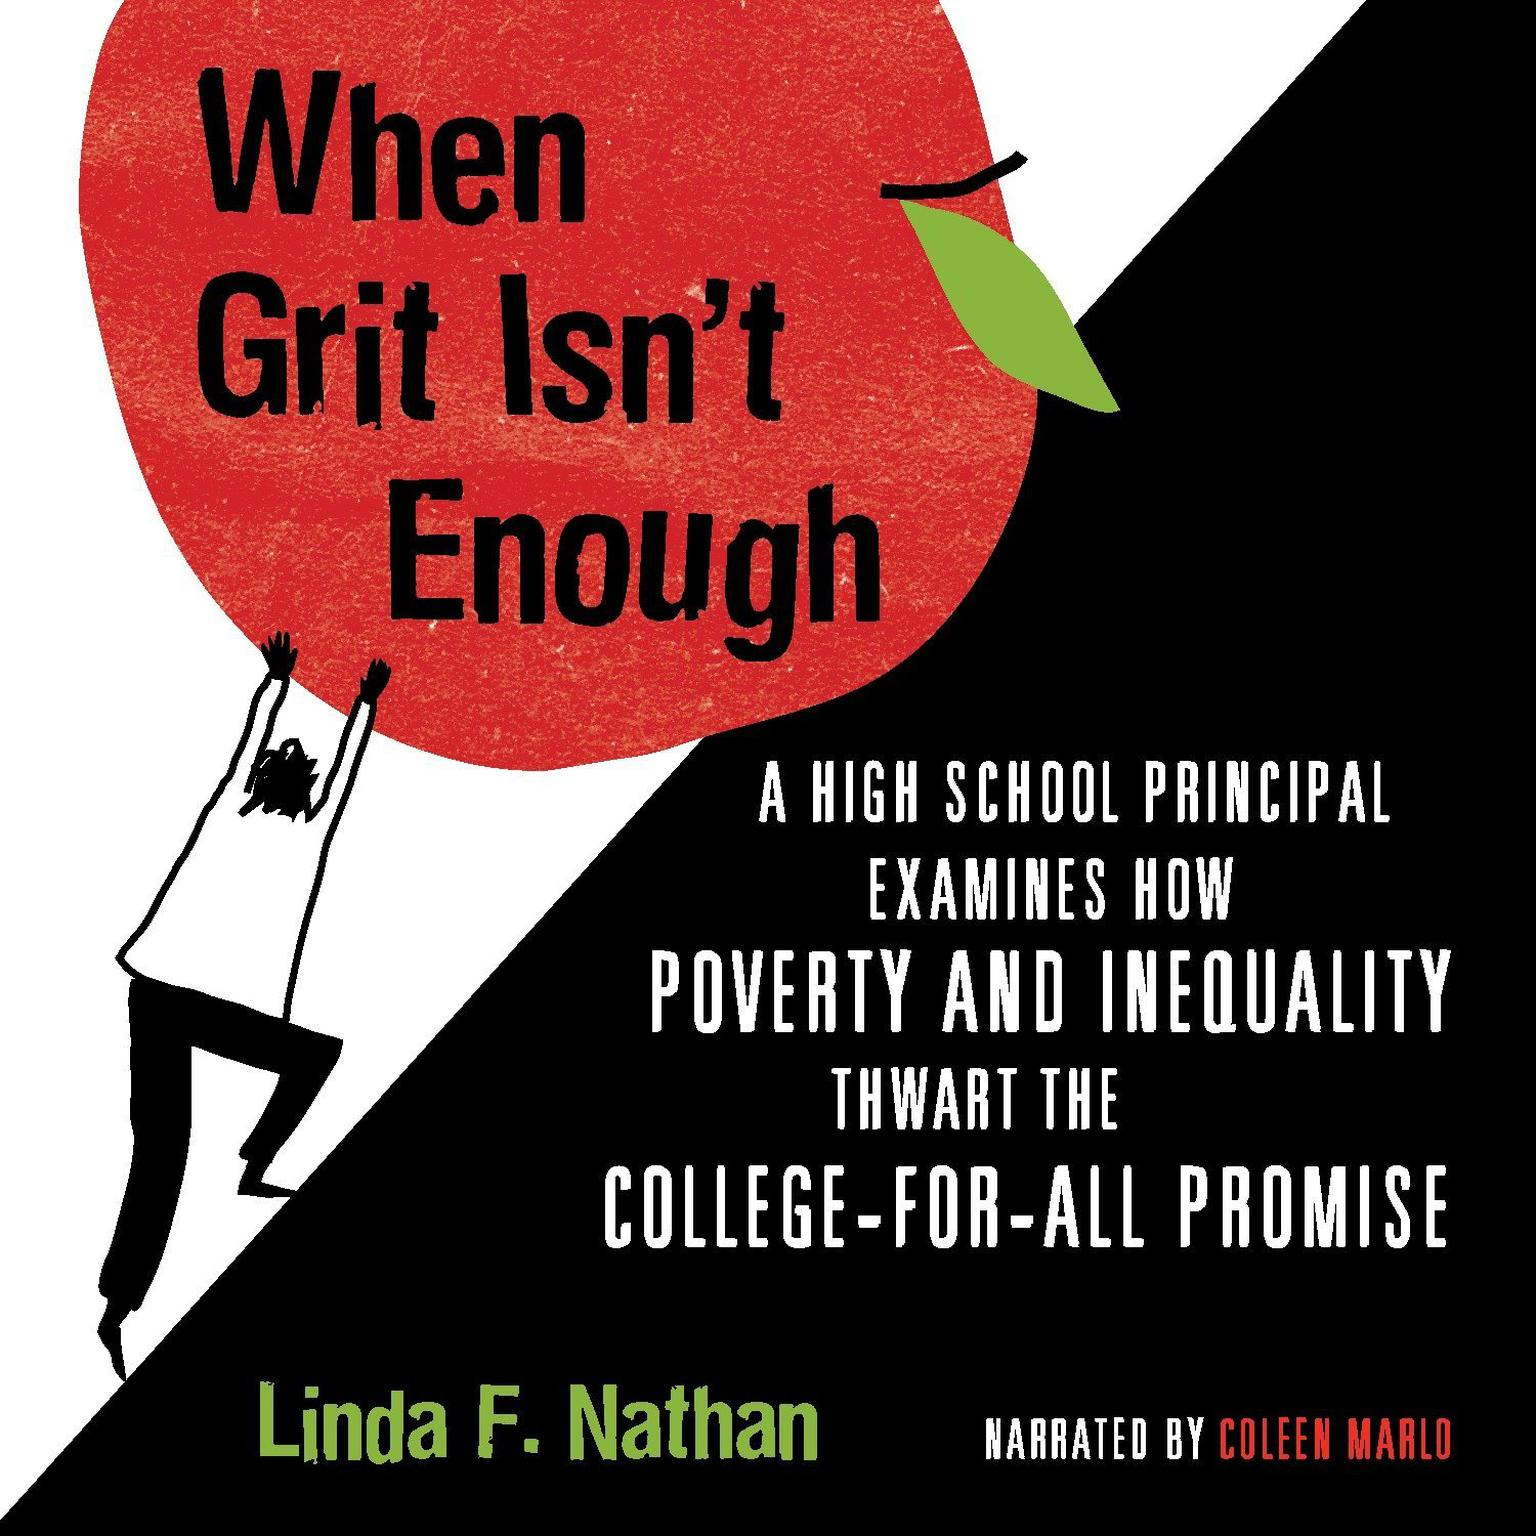 Printable When Grit Isn't Enough: A High School Principal Examines How Poverty and Inequality Thwart the College-For-All Promise Audiobook Cover Art